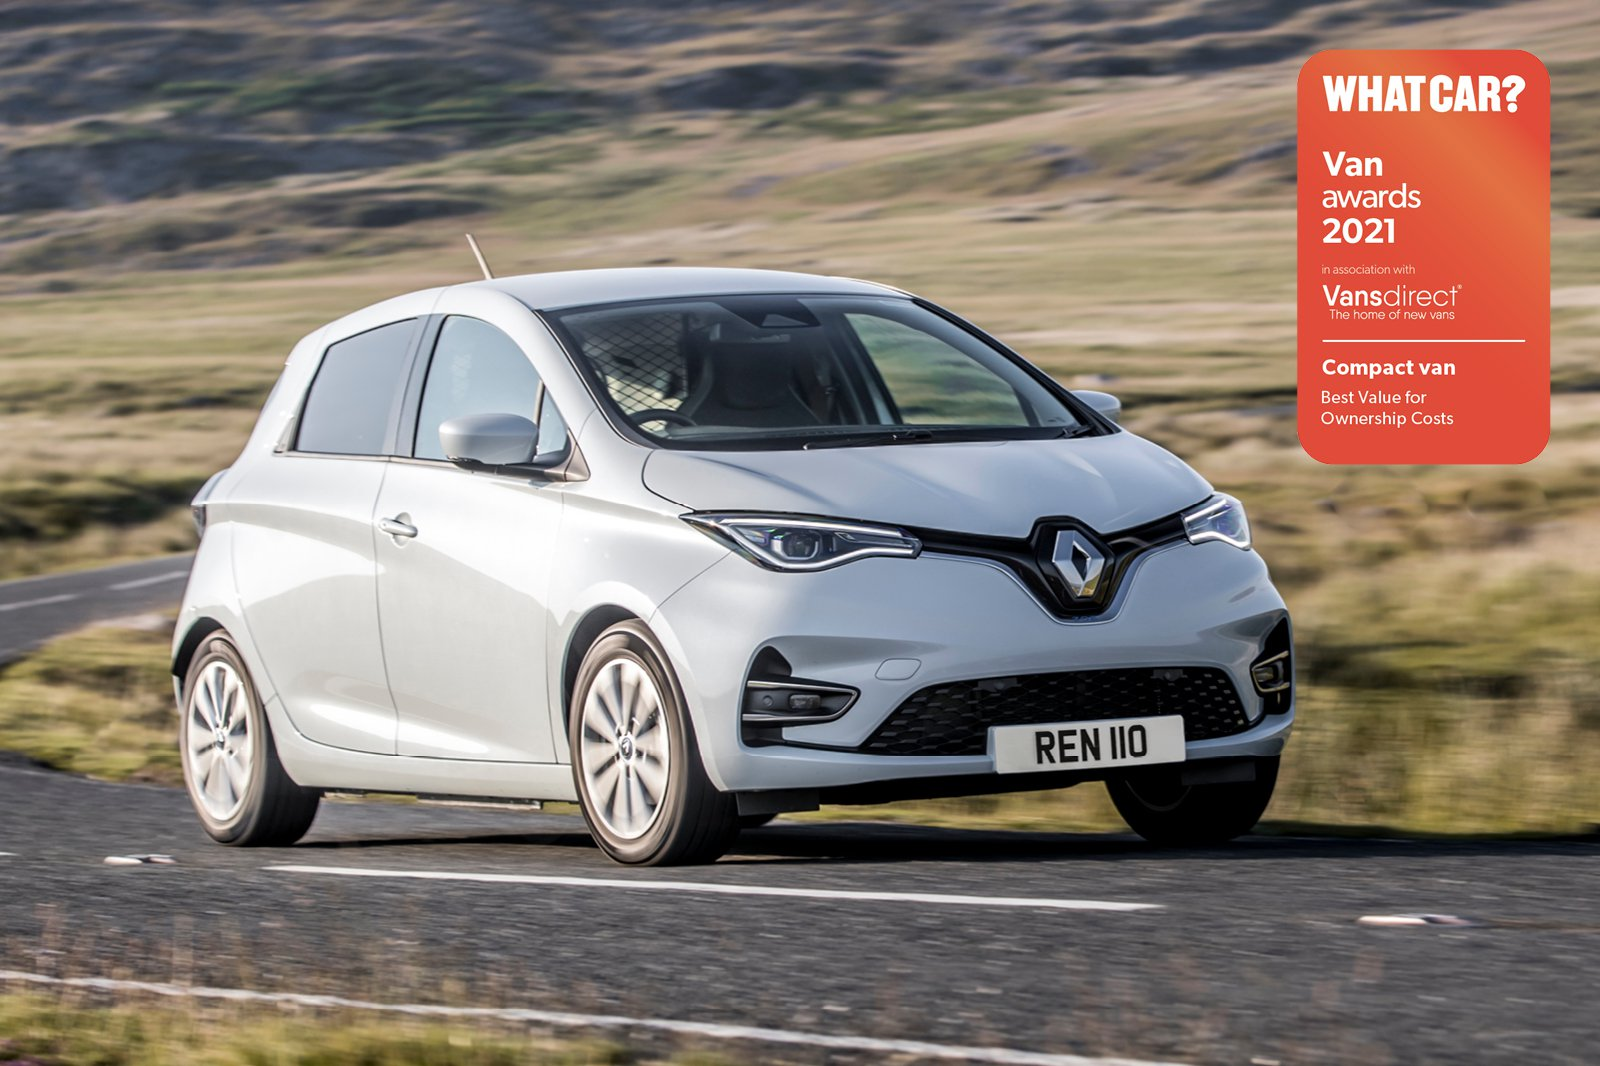 Van Awards - Renault Zoe (new logo)